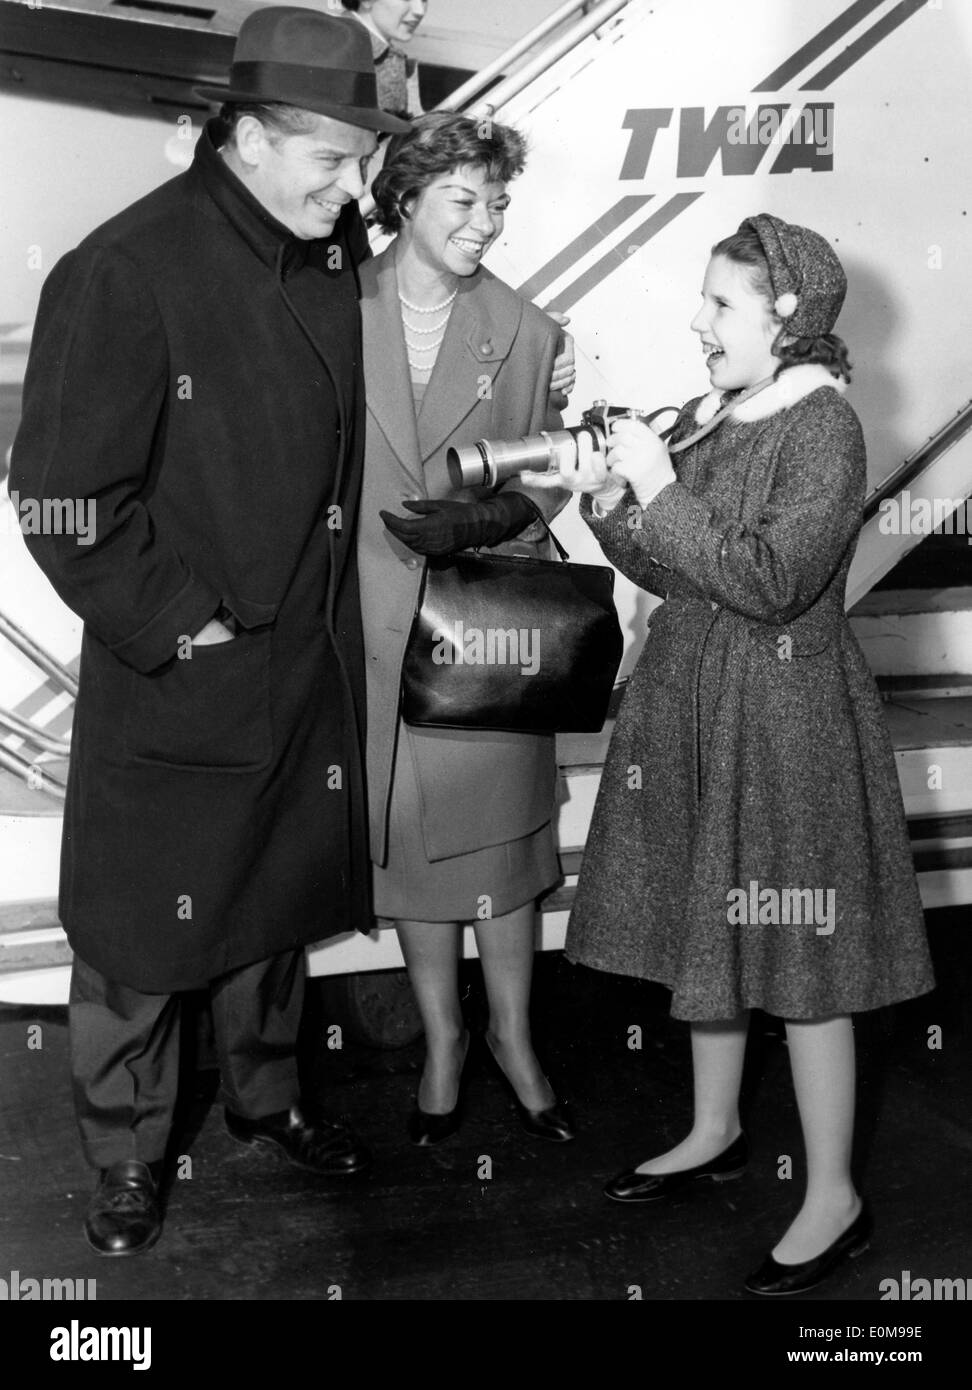 Actor Milton Berle boards plane with family - Stock Image